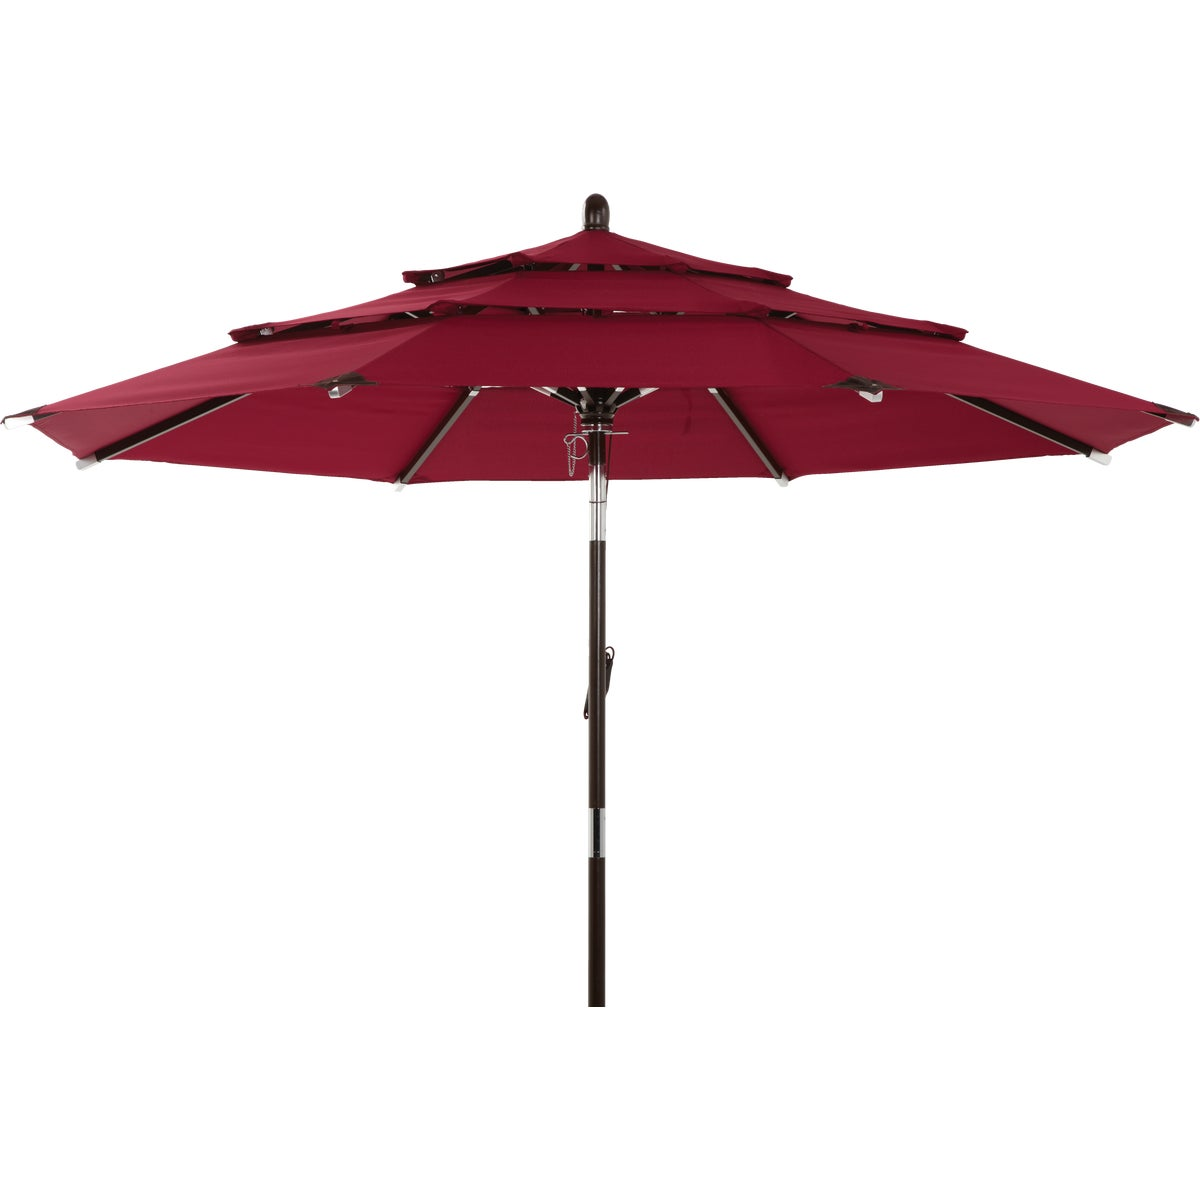 THREE-TIER UMBRELLA BRG - TJWU-007-270 BRG by Do it Best